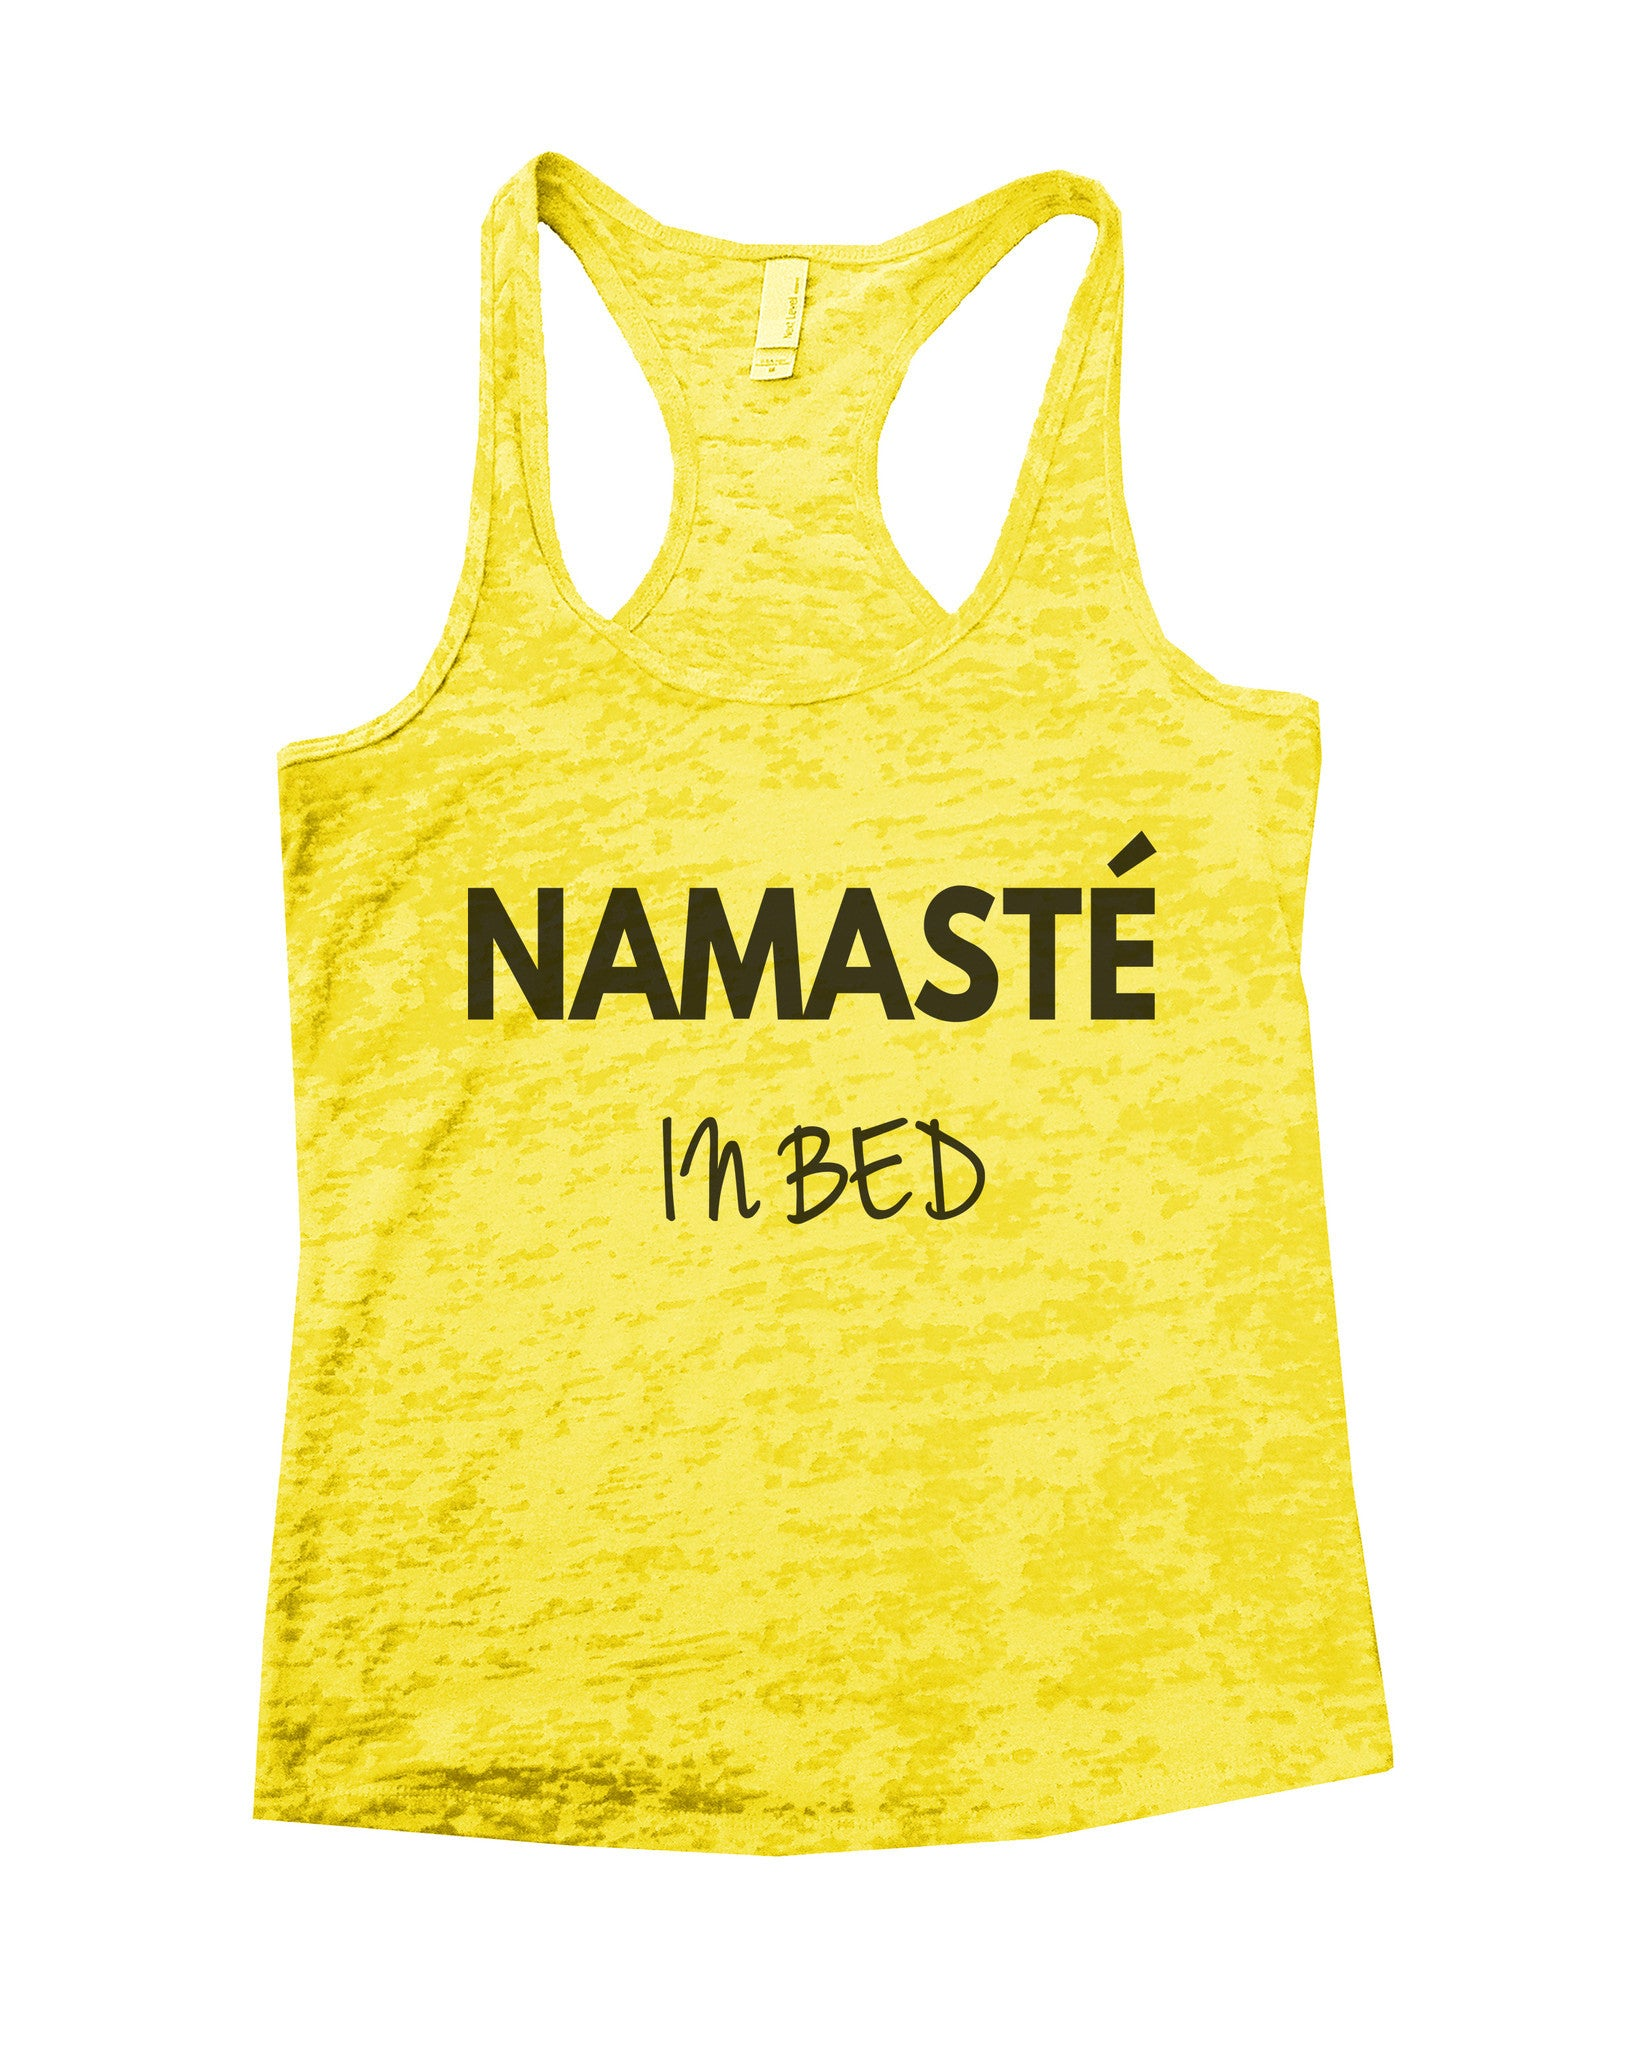 Namaste In Bed Burnout Tank Top By BurnoutTankTops.com - 647 - Funny Shirts Tank Tops Burnouts and Triblends  - 6